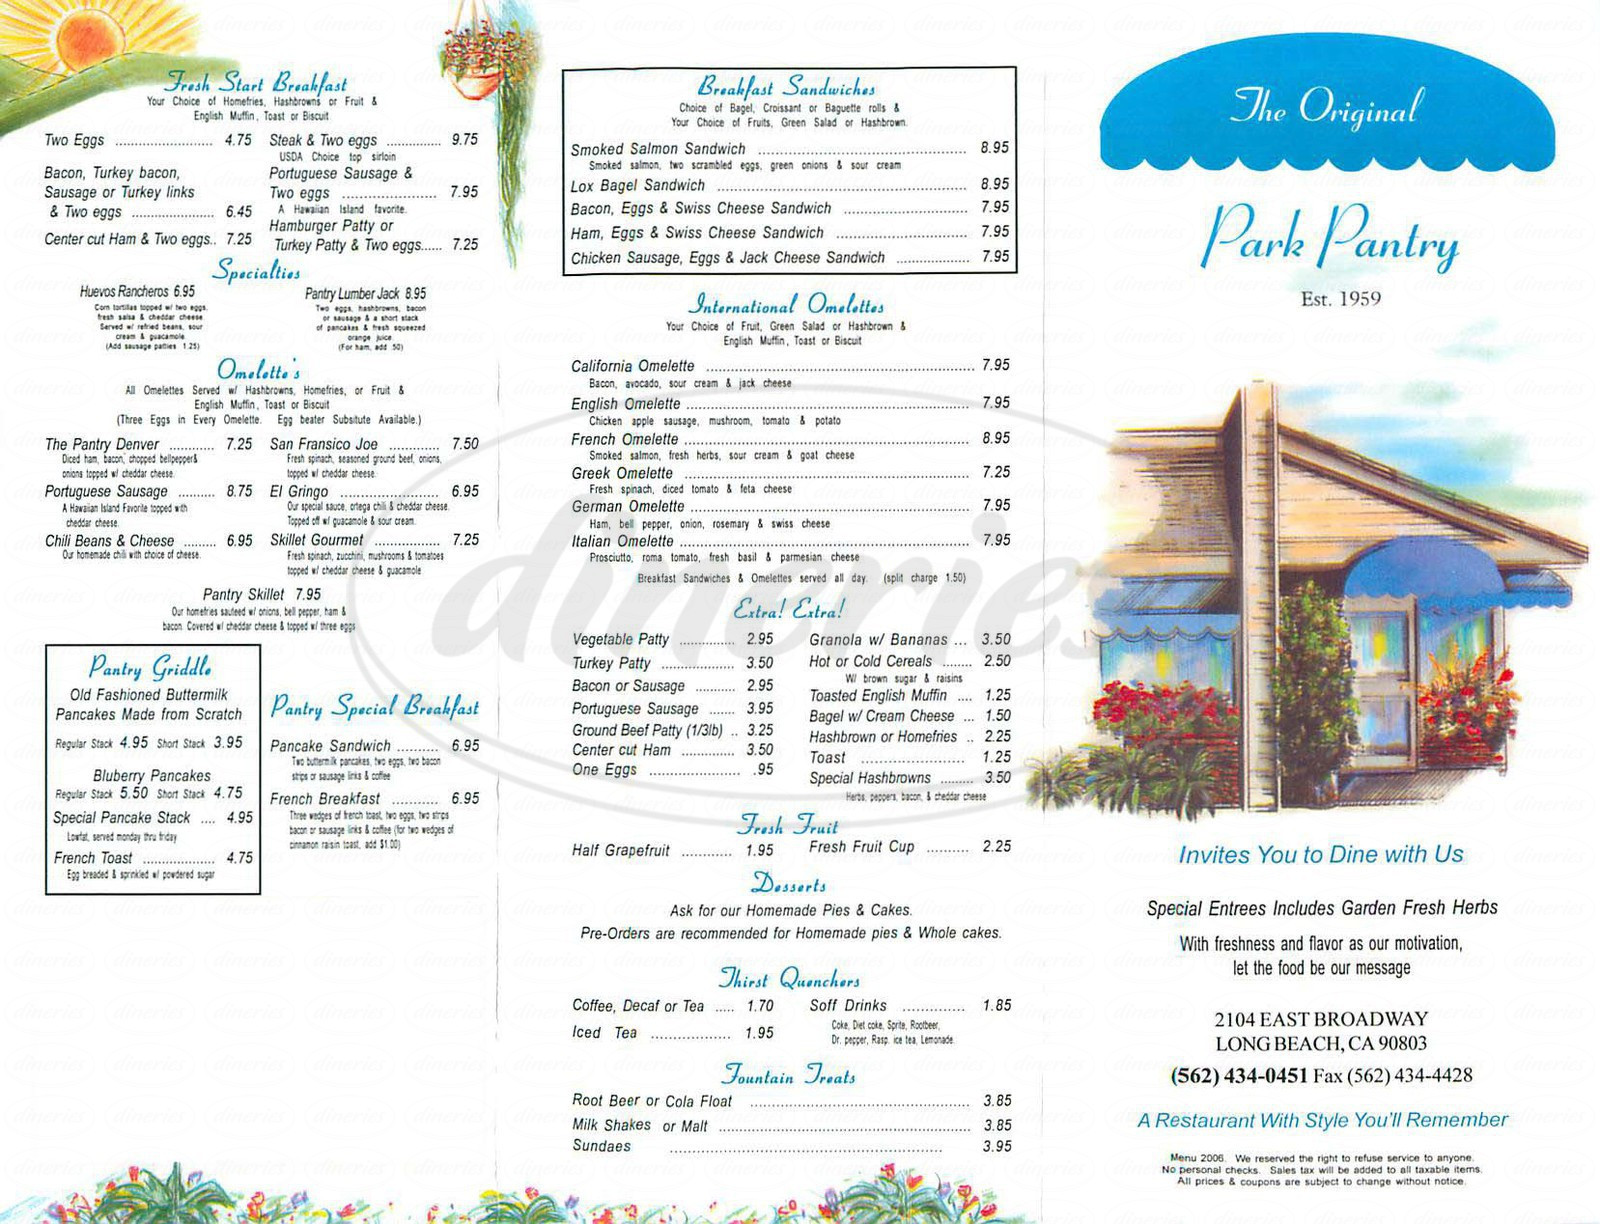 Best ideas about The Pantry Menu . Save or Pin The Original Park Pantry Menu Long Beach Dineries Now.